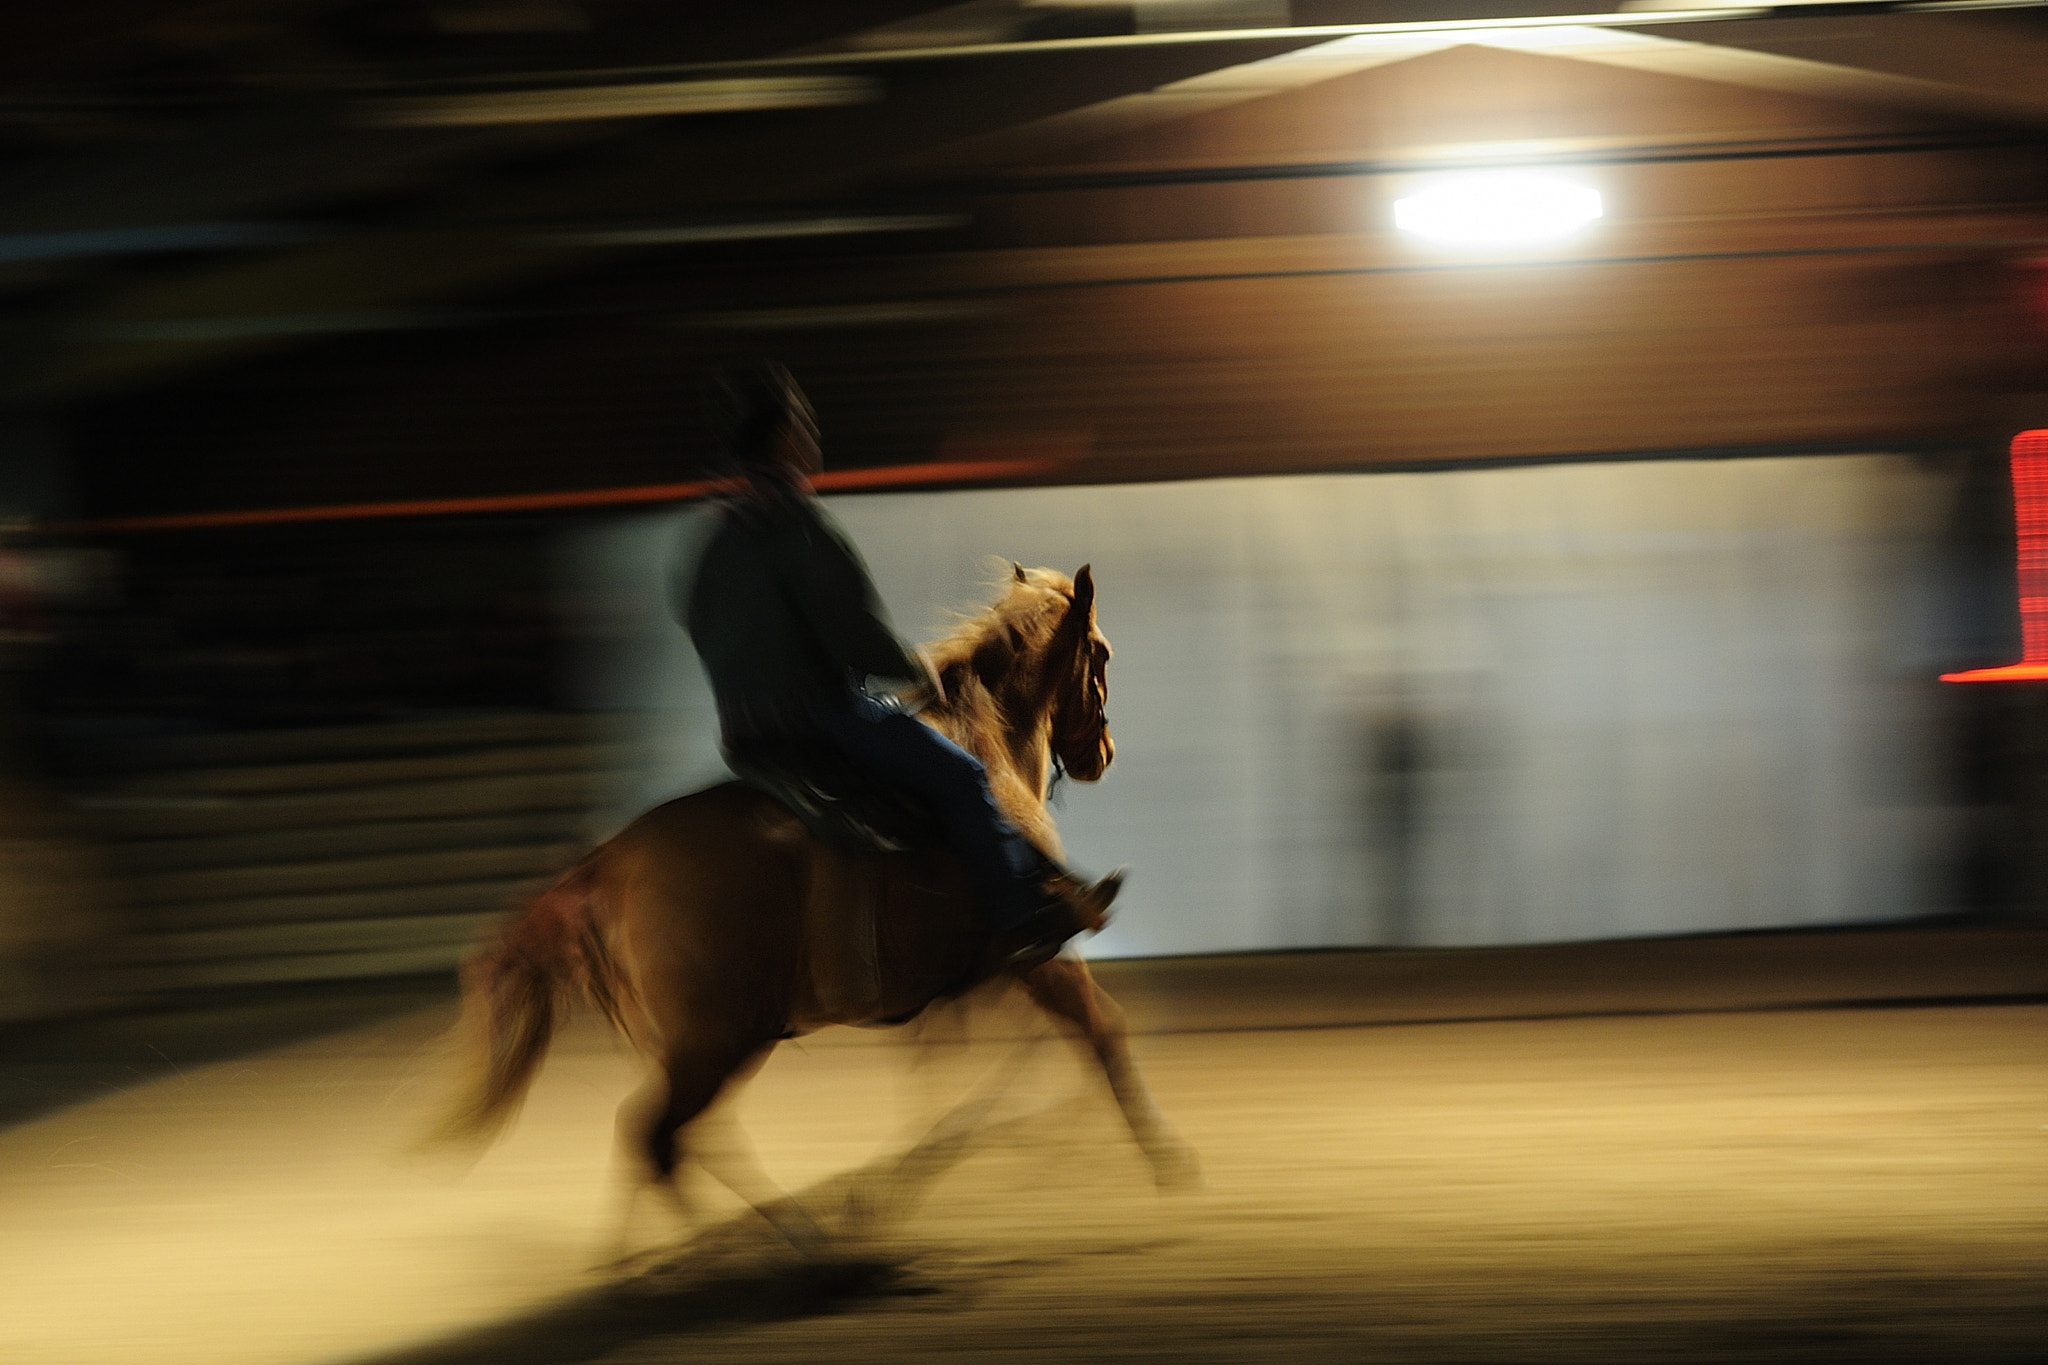 Photograph Fast Horse by Quadri Ulisse on 500px